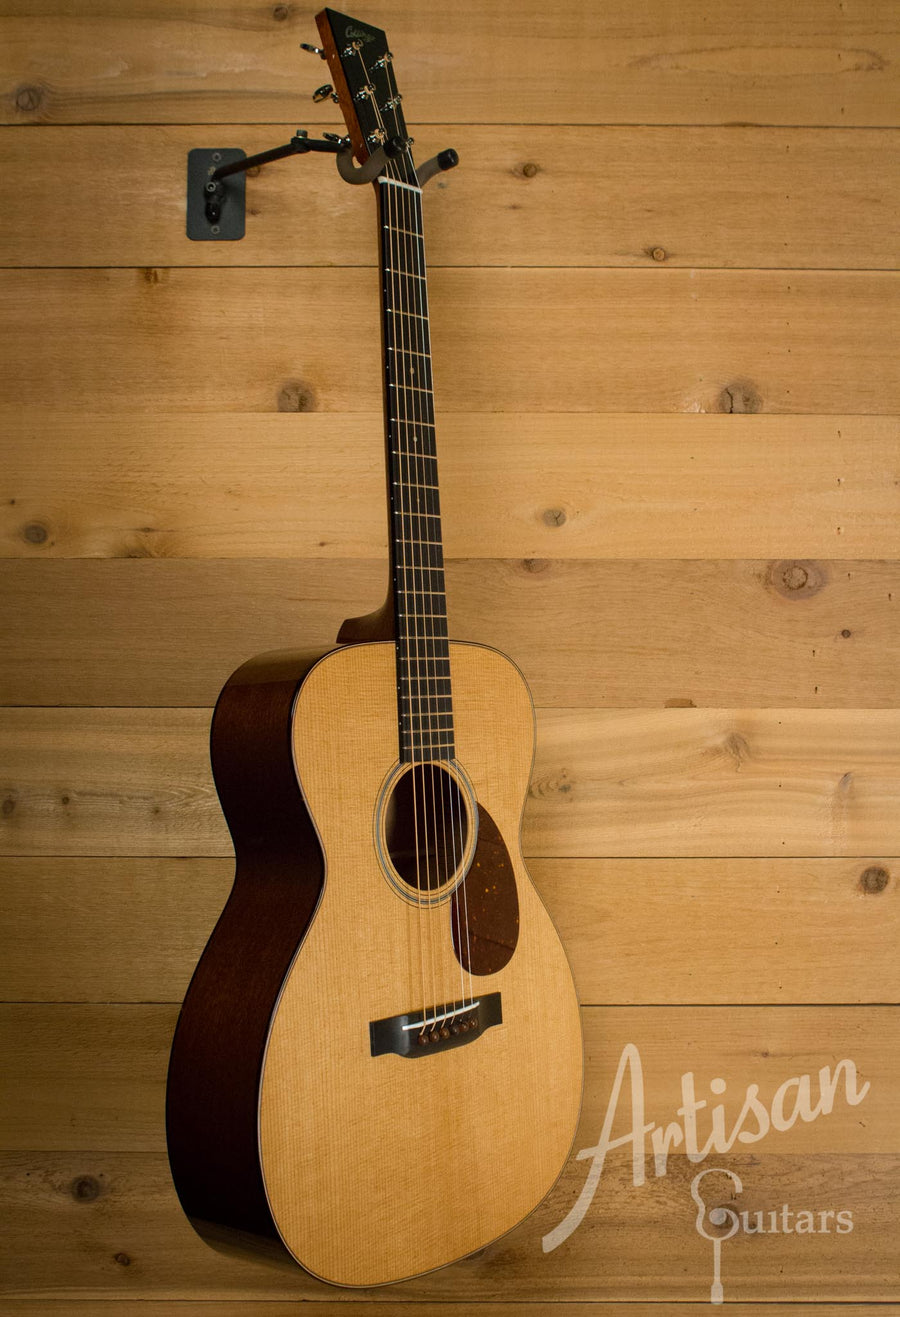 Collings OM1 T Guitar Baked Sitka Spruce and Mahogany ID-10581 - Artisan Guitars